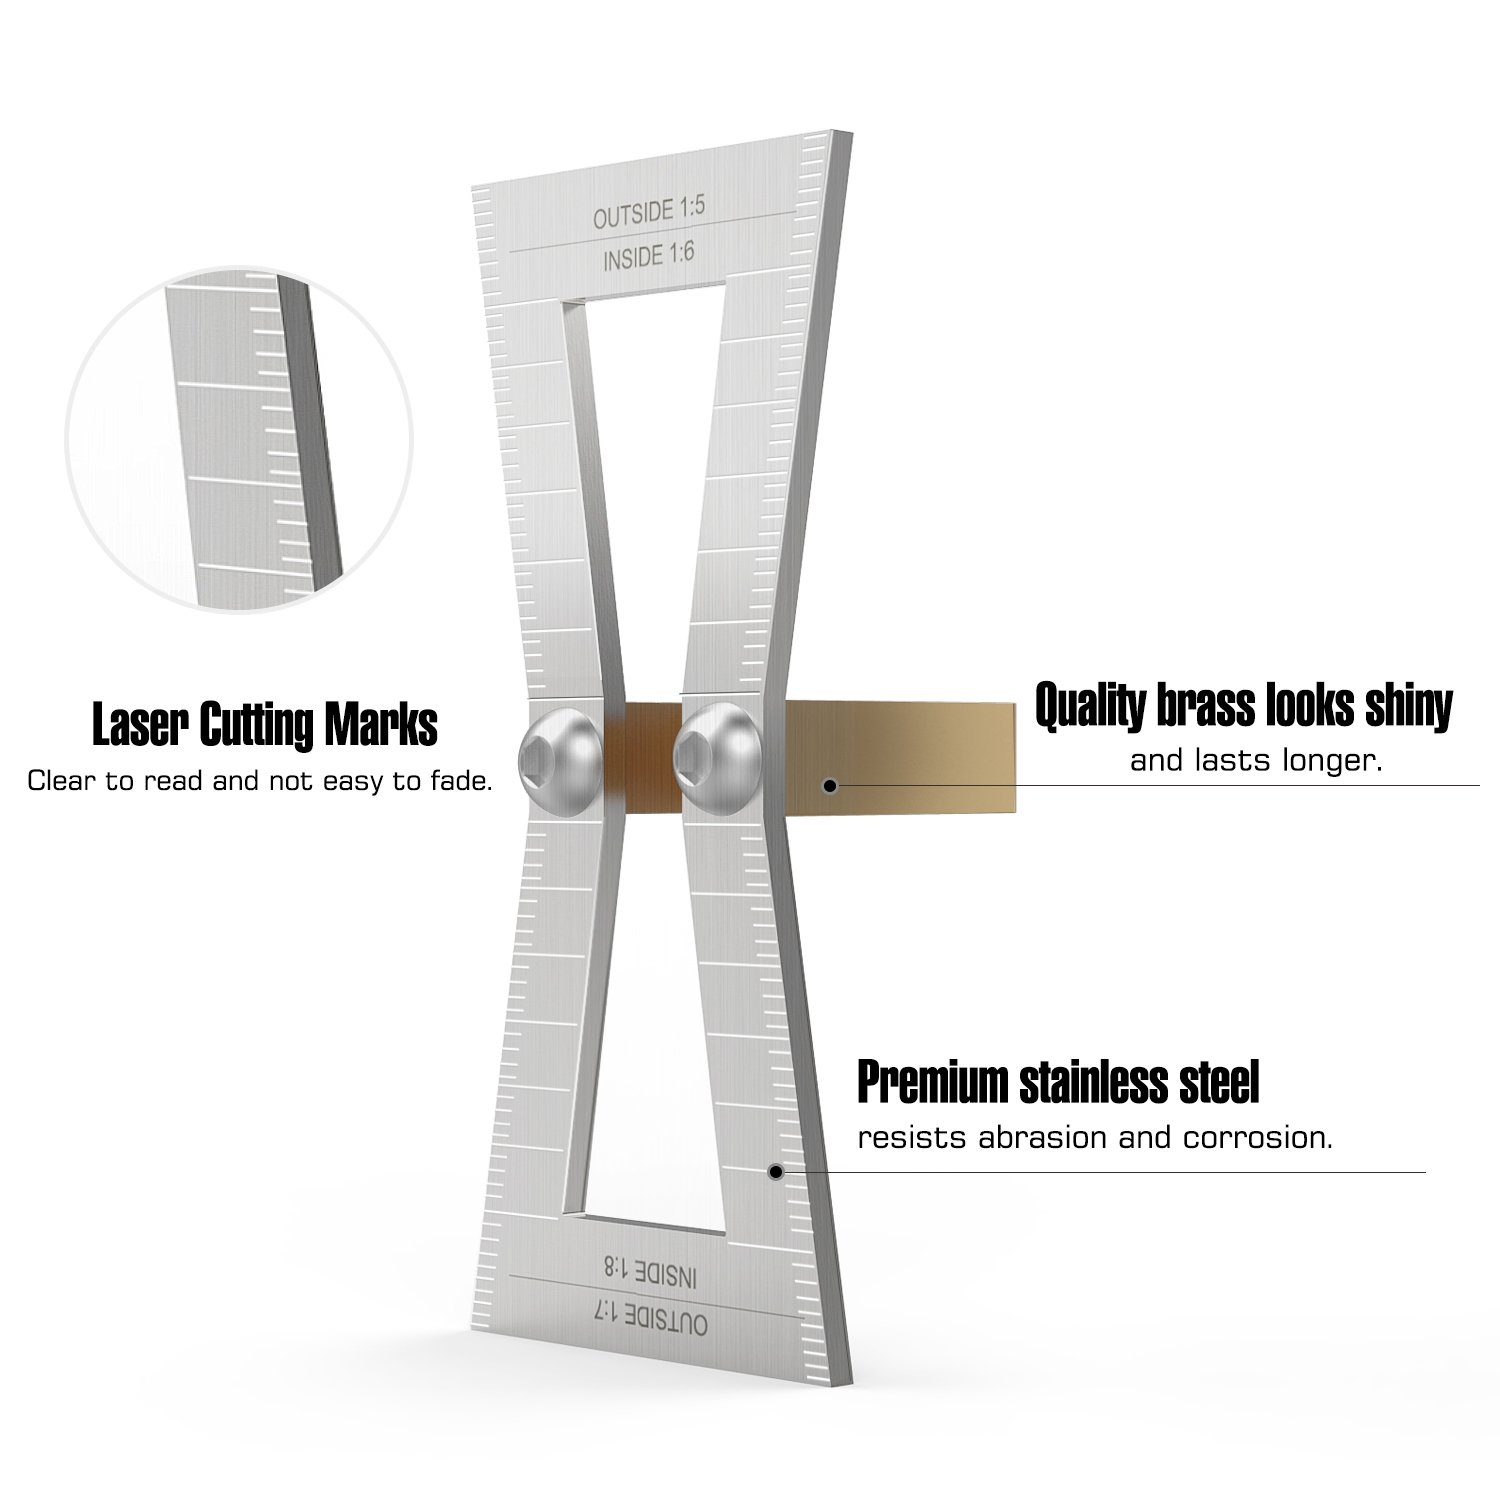 Housolution Dovetail Marker, Hand Cut Wood Joints Gauge Dovetail Guide Tool with Scale, Dovetail Template Size 1:5-1:6 and 1:7-1:8 for Woodworking - Silver by Housolution (Image #4)